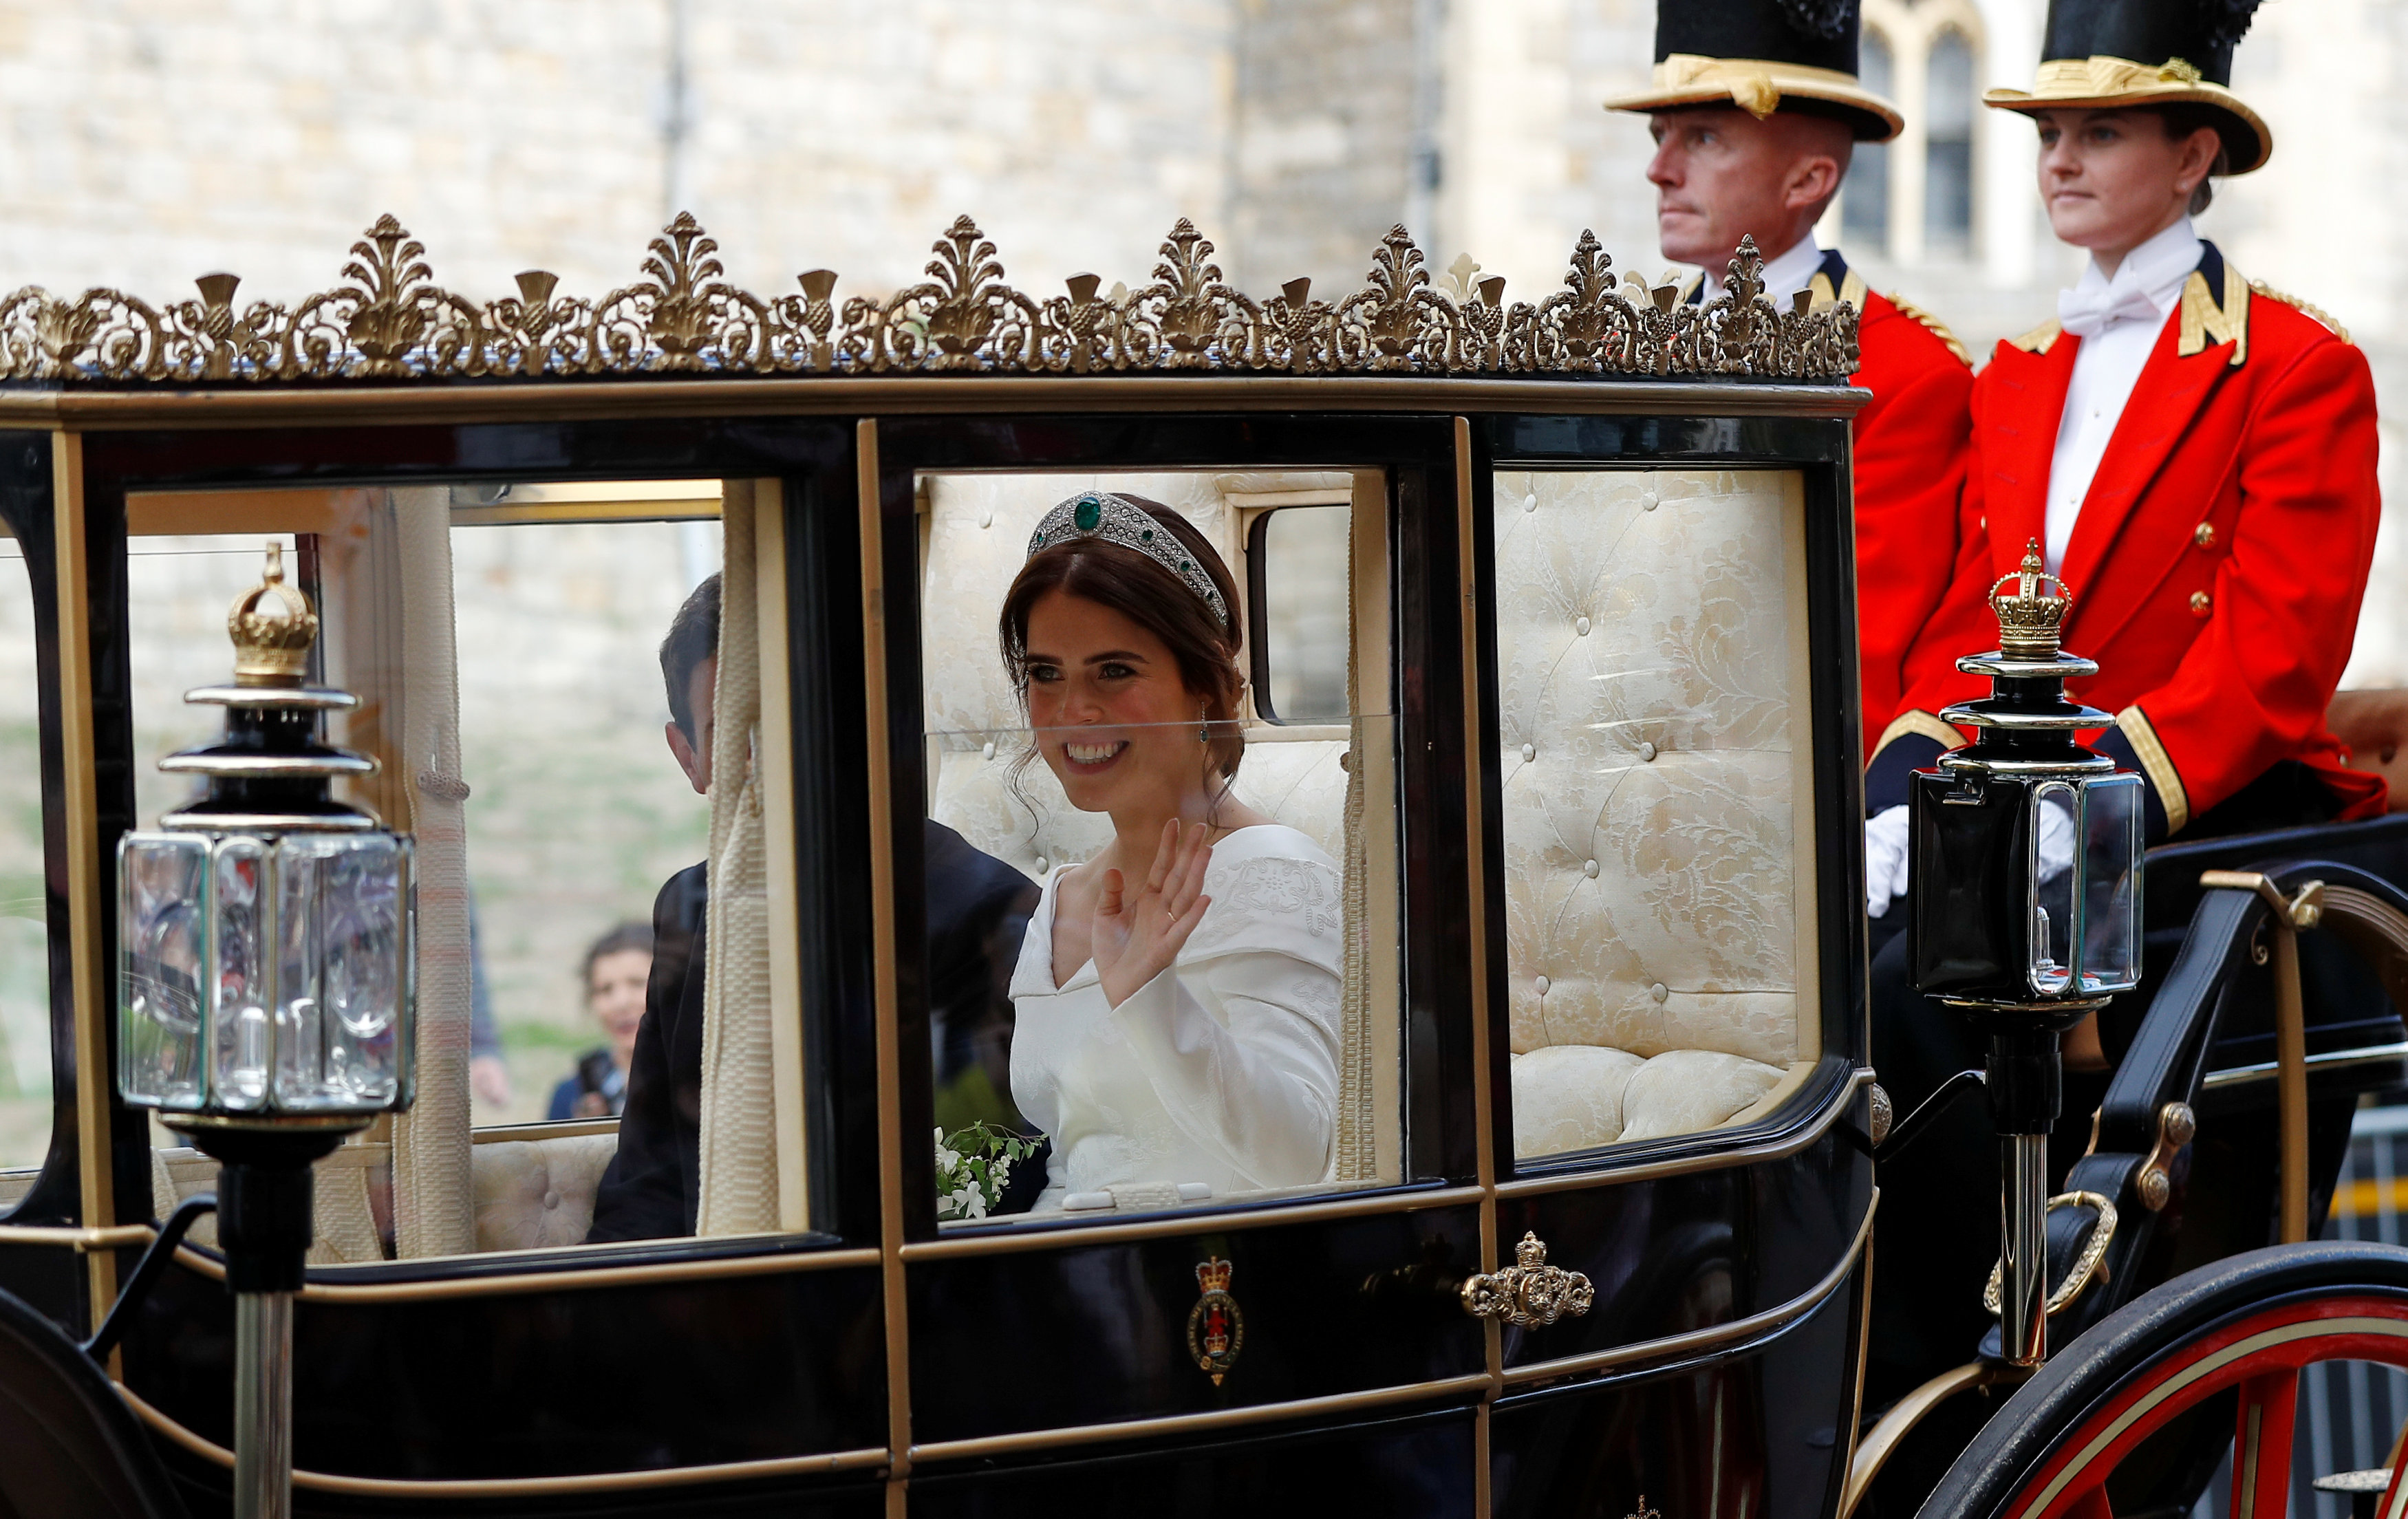 Britain's Princess Eugenie and Jack Brooksbank leave in a carriage after their wedding ceremony at Windsor Castle, Windsor